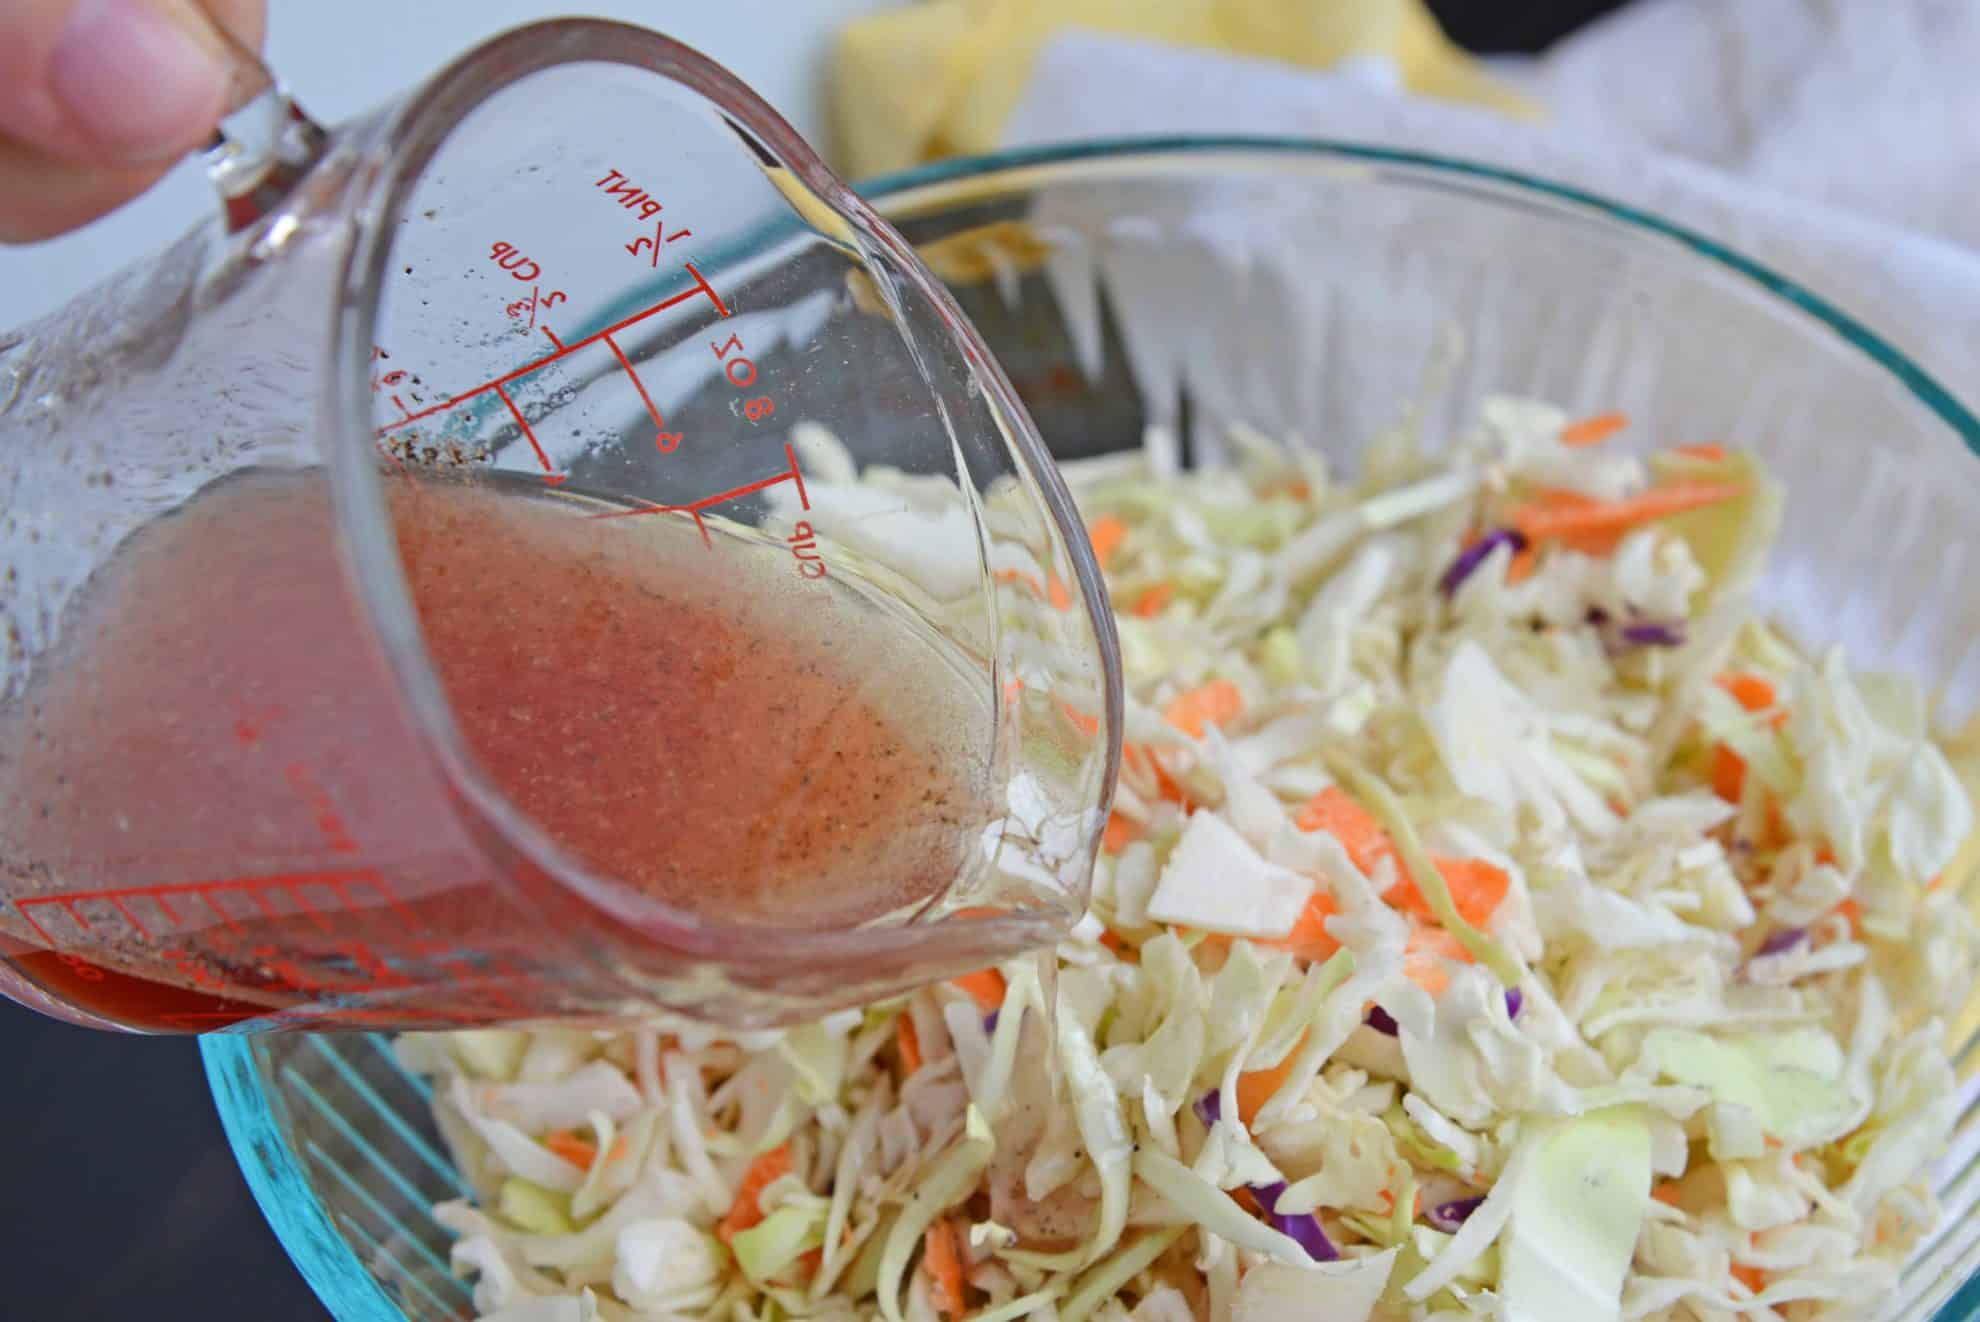 Vinegar dressing pouring over cabbage slaw